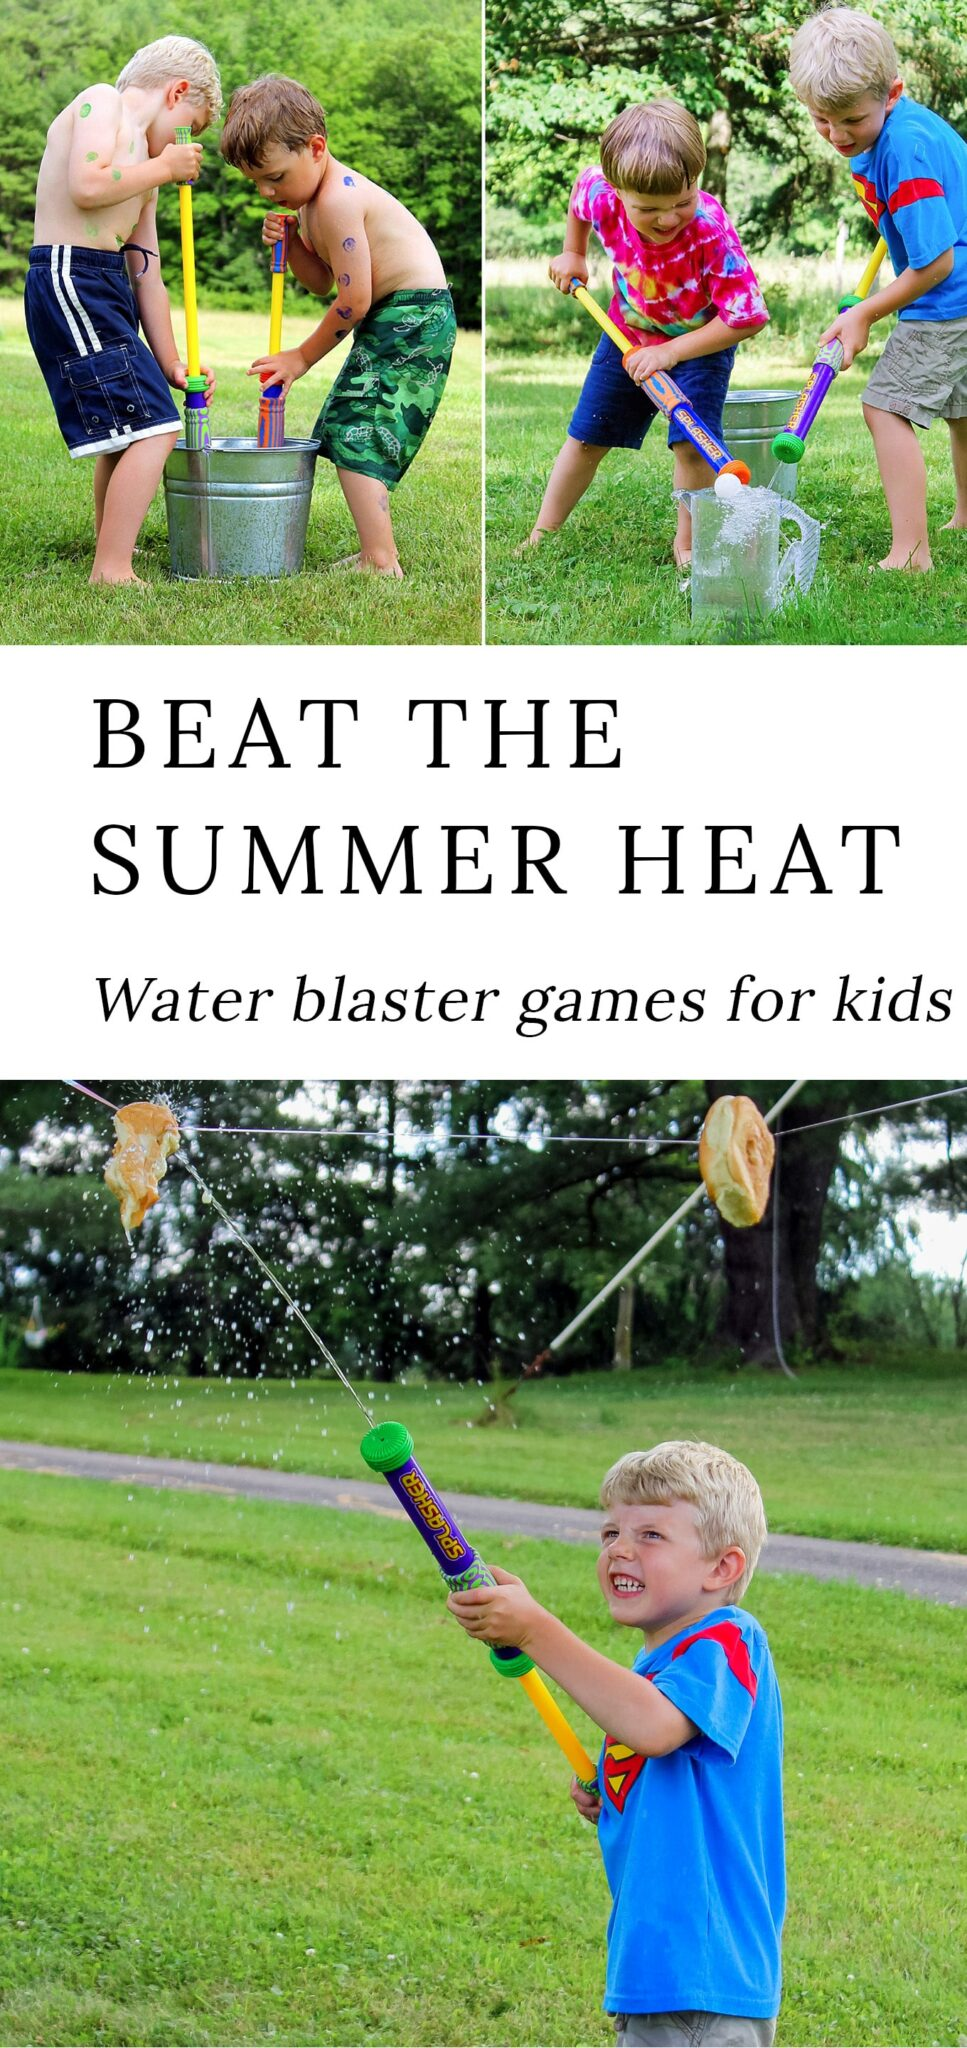 Beat the Heat with Water Blaster Games